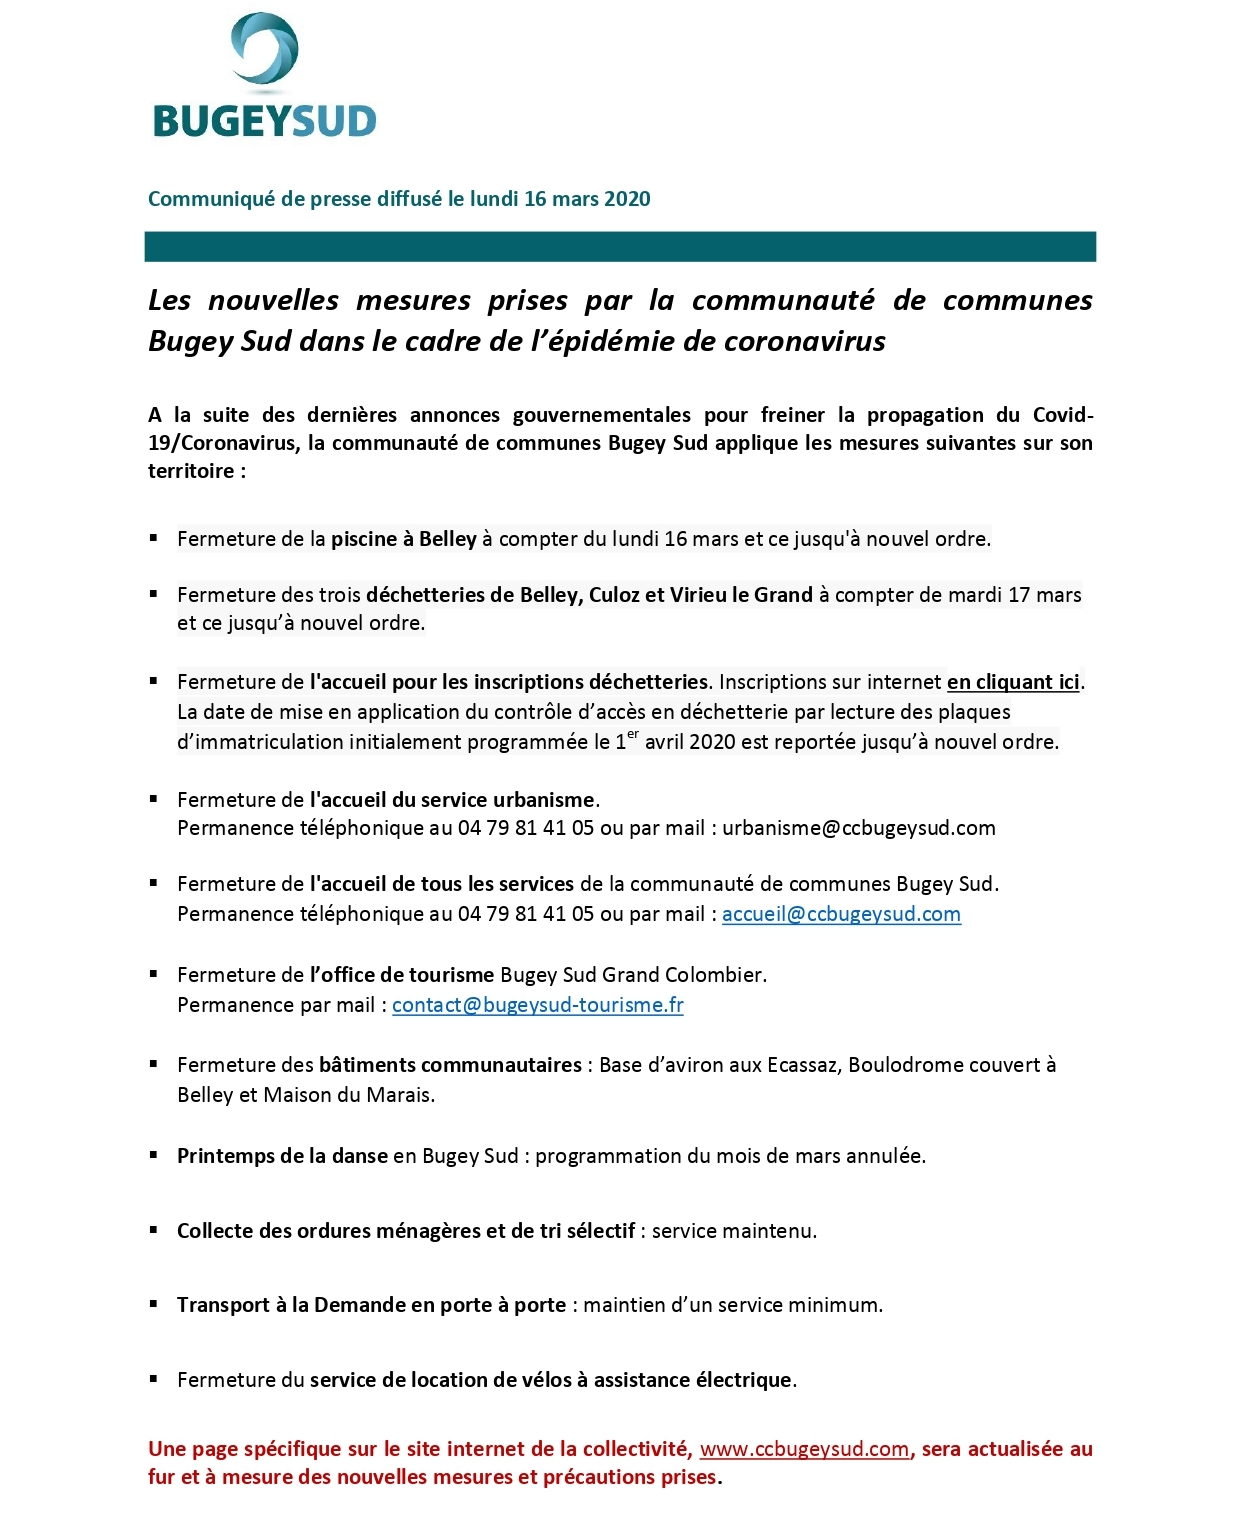 CP_mesures et precautions CCBS_Covid19_16032020_page-0001.jpg (454 KB)